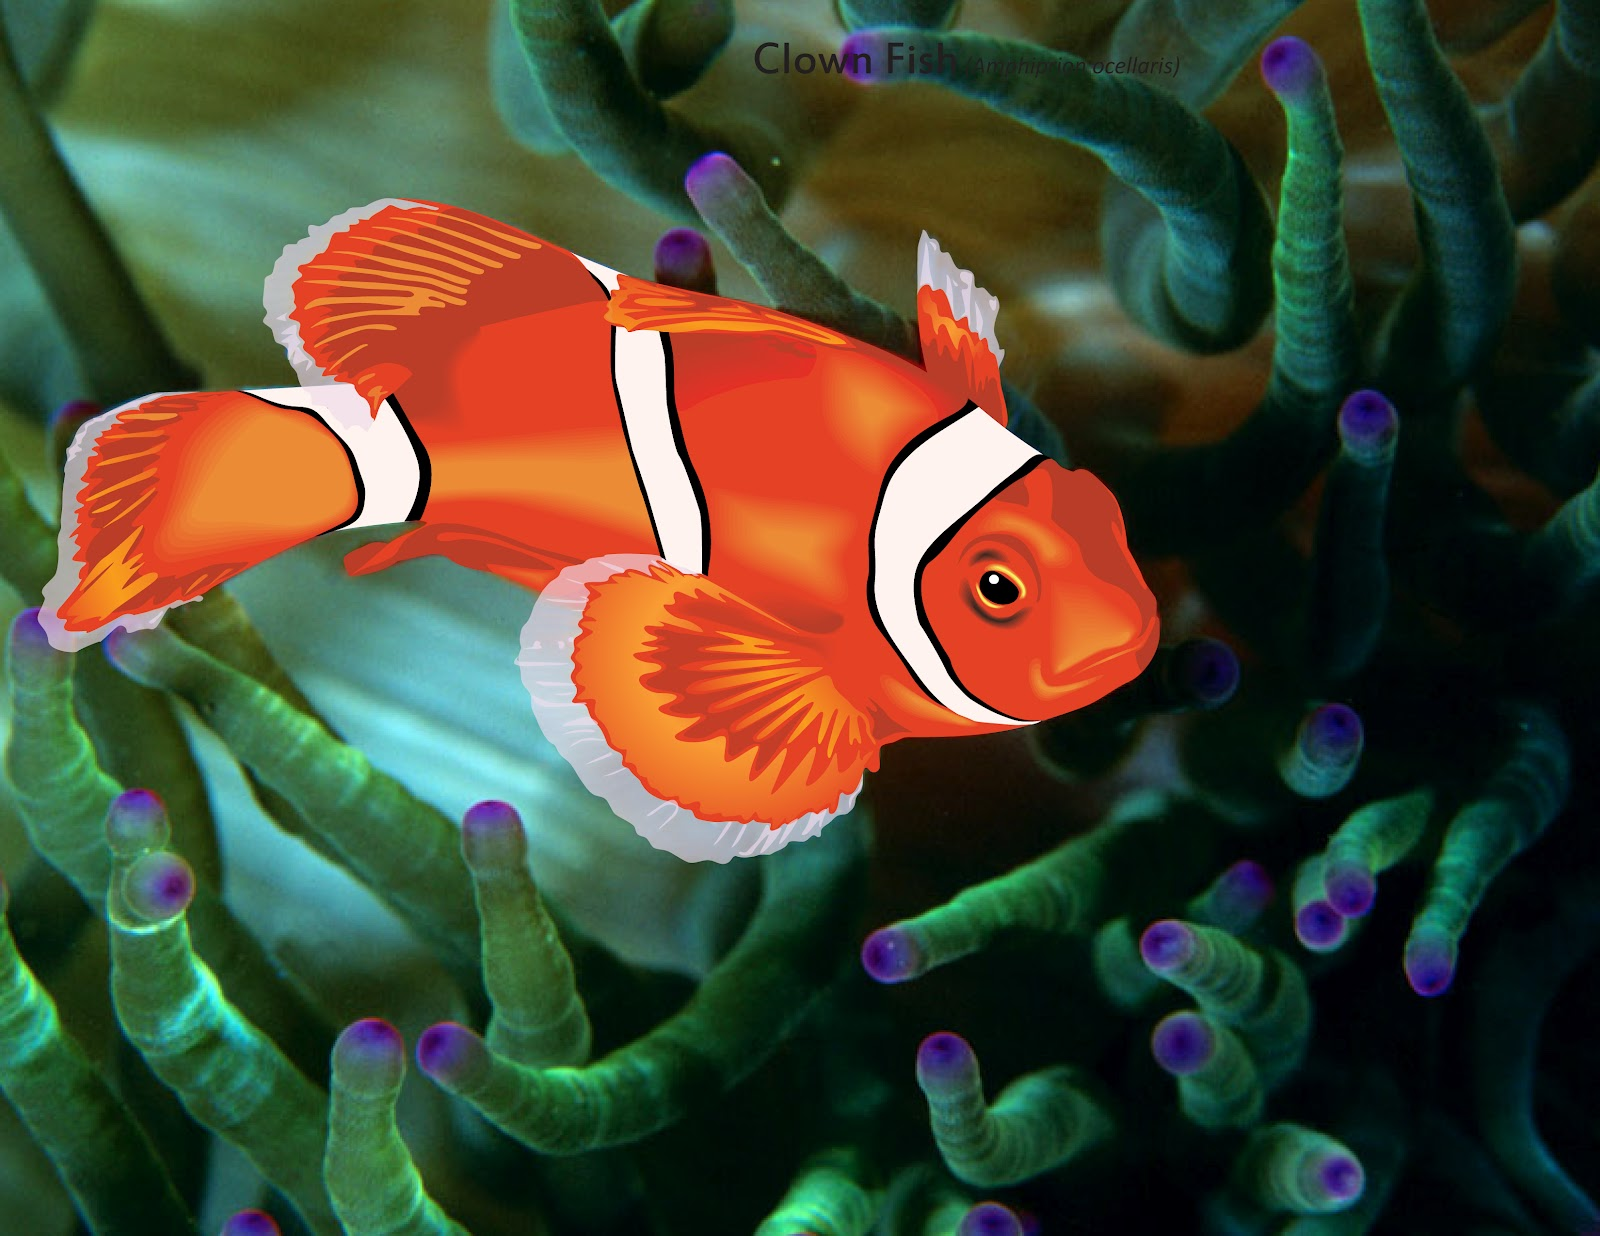 clown fish fin